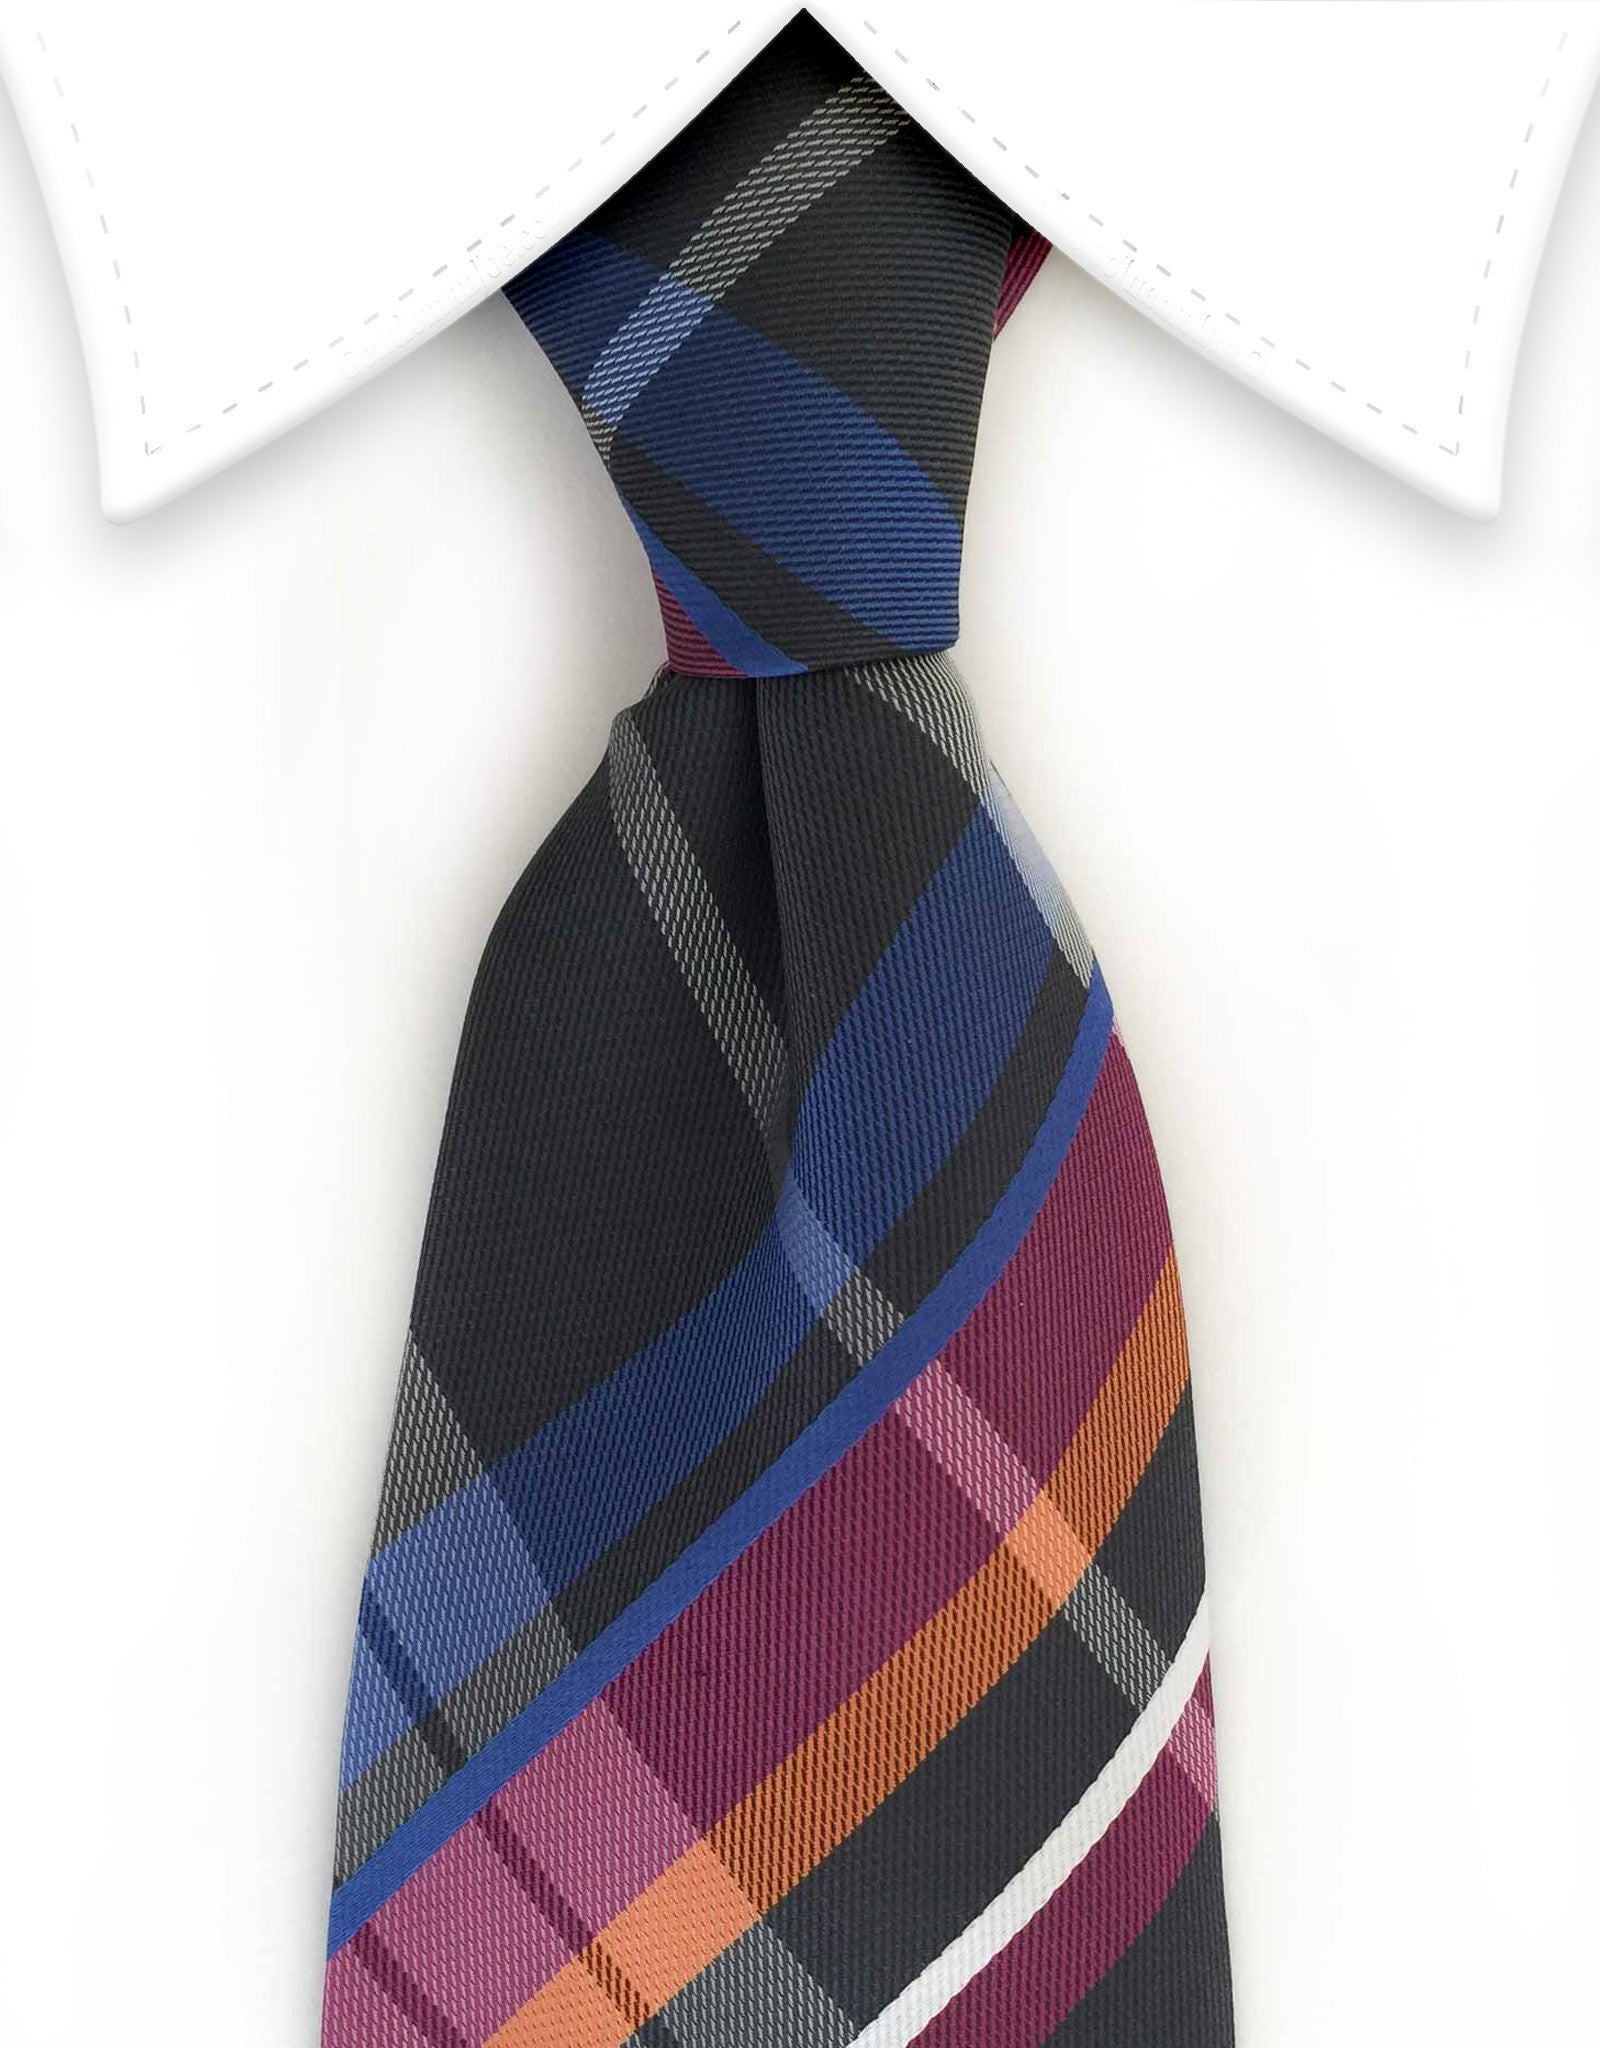 Black, blue, purple, orange & white plaid tie